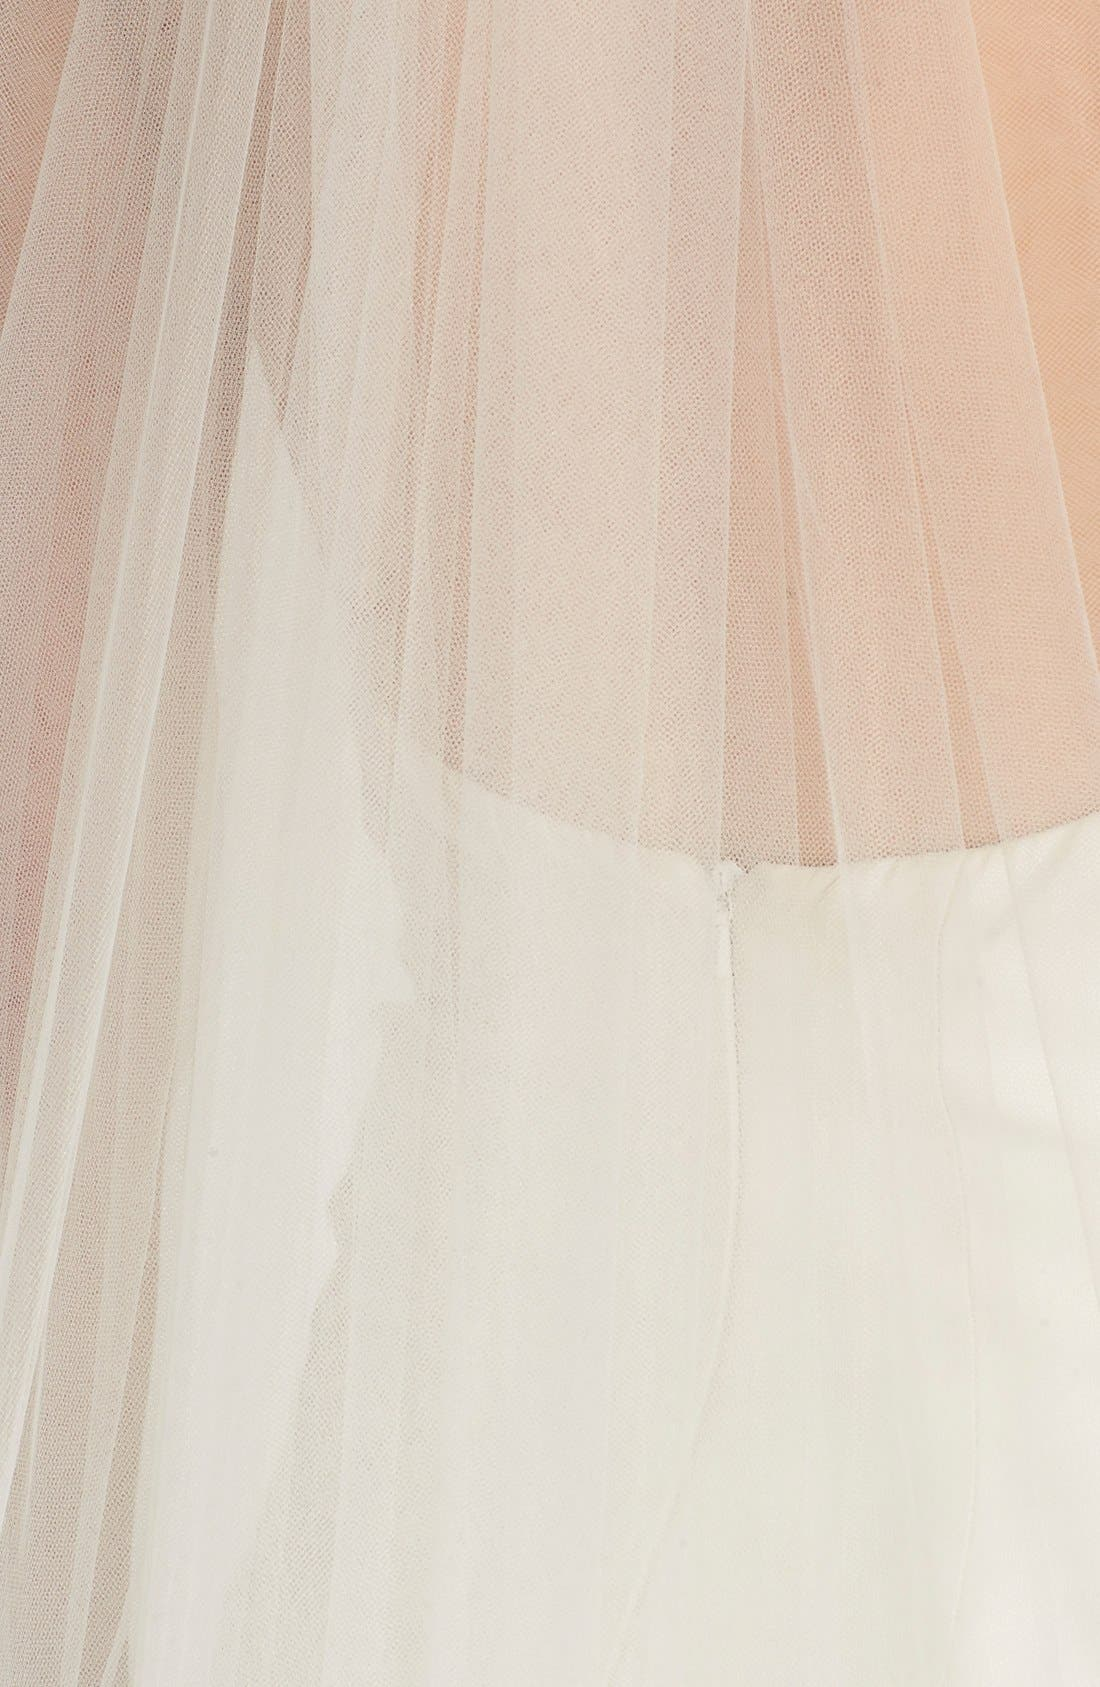 'Zen' Cascaded Chapel Veil,                             Alternate thumbnail 3, color,                             LIGHT IVORY